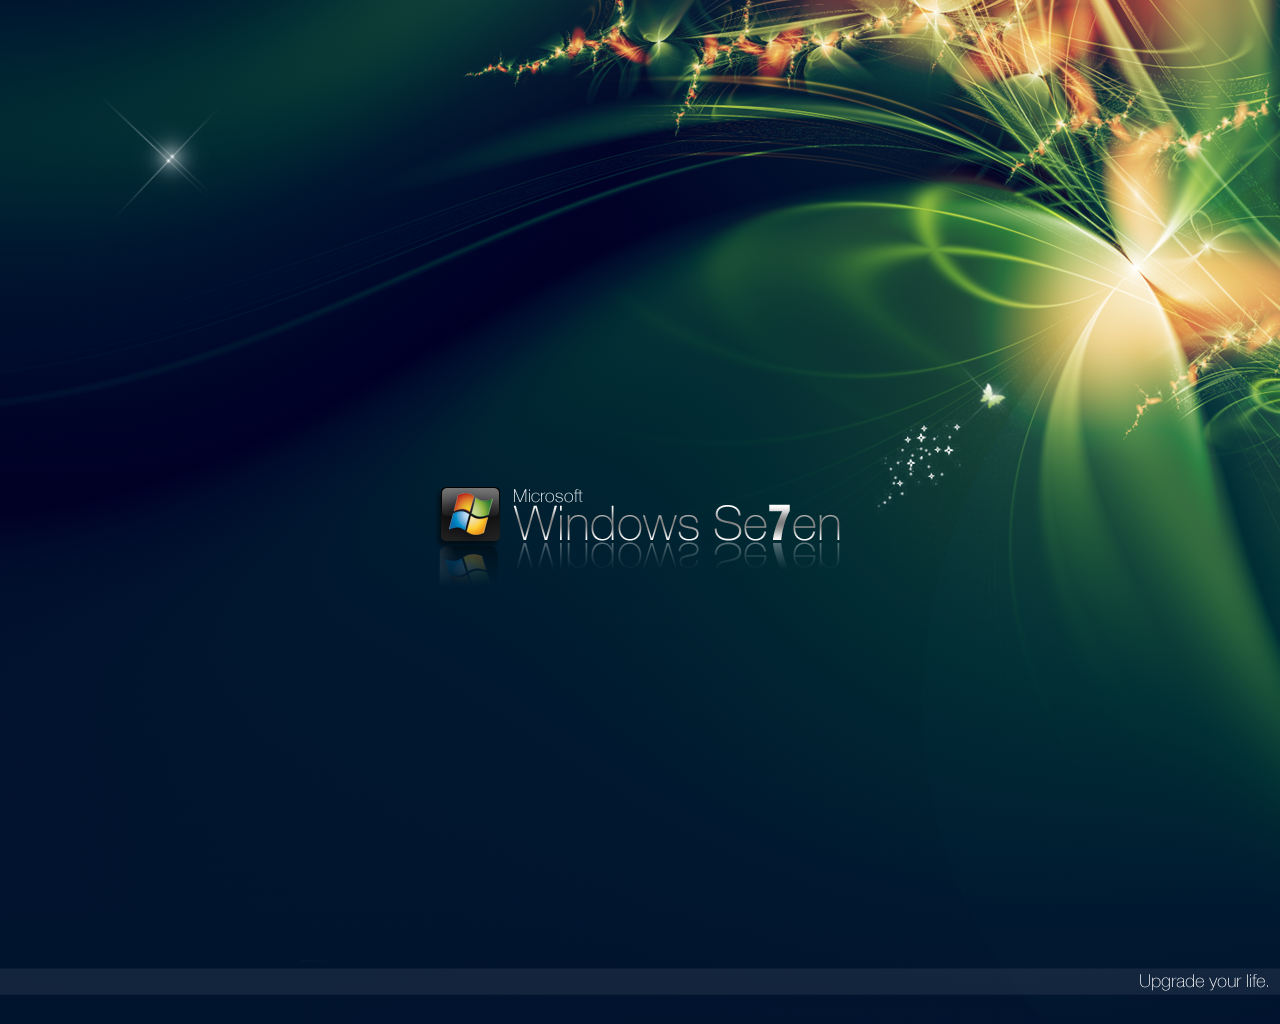 download wallpapers for windows 8